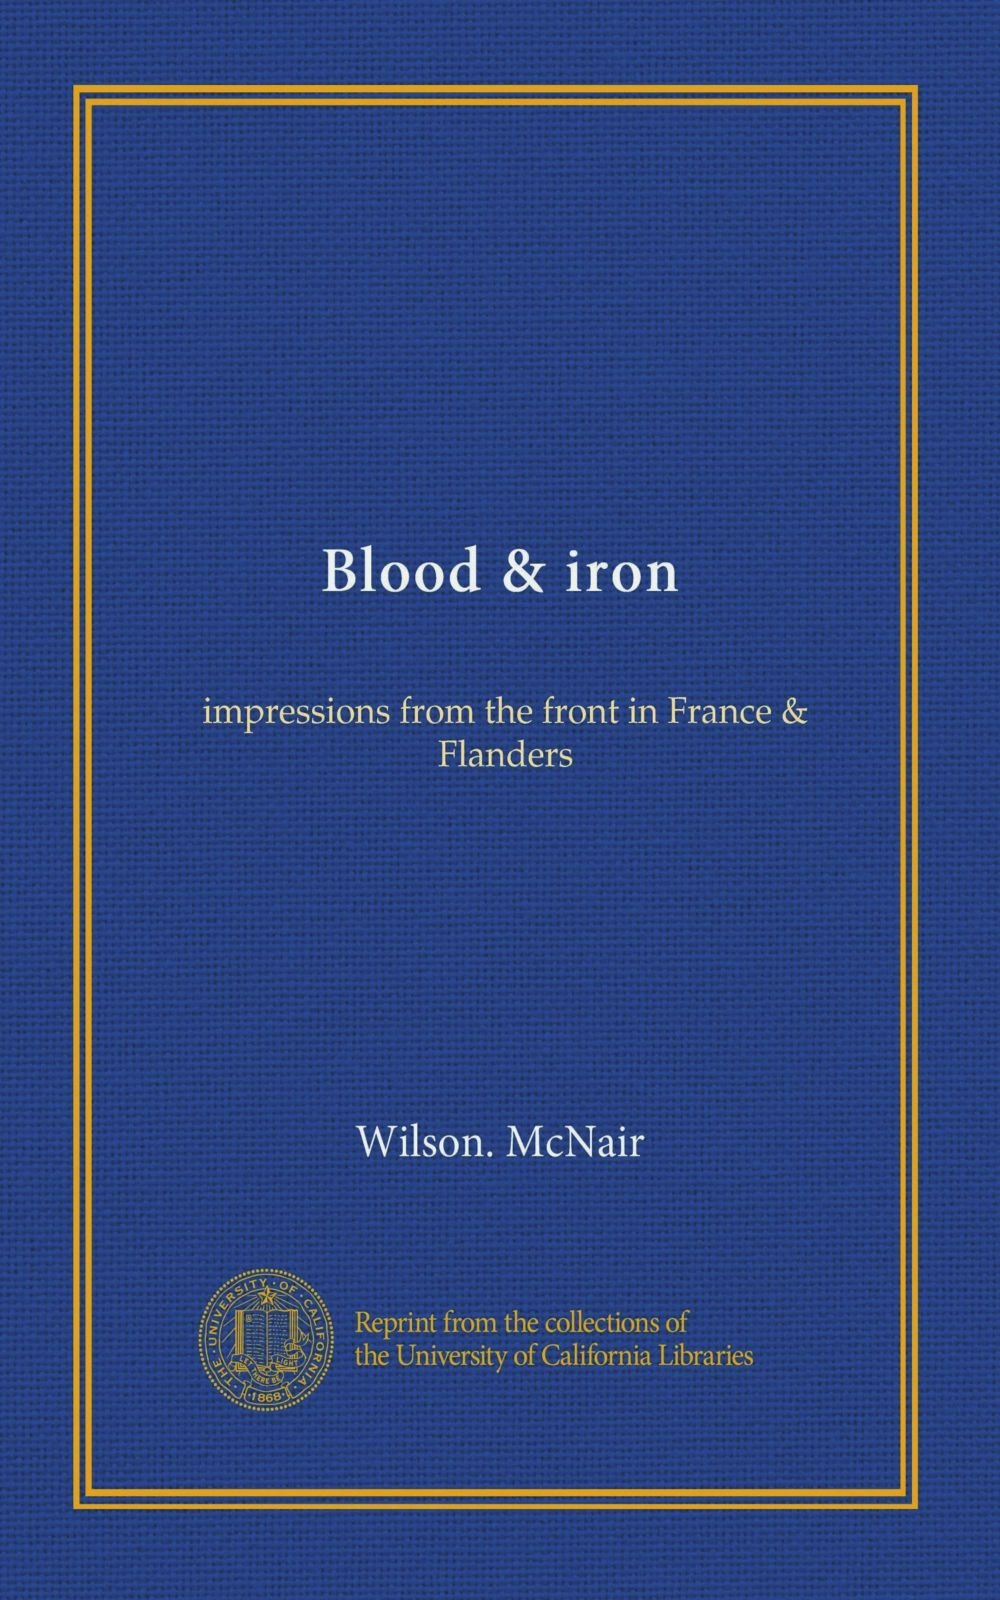 Blood & iron: impressions from the front in France & Flanders PDF